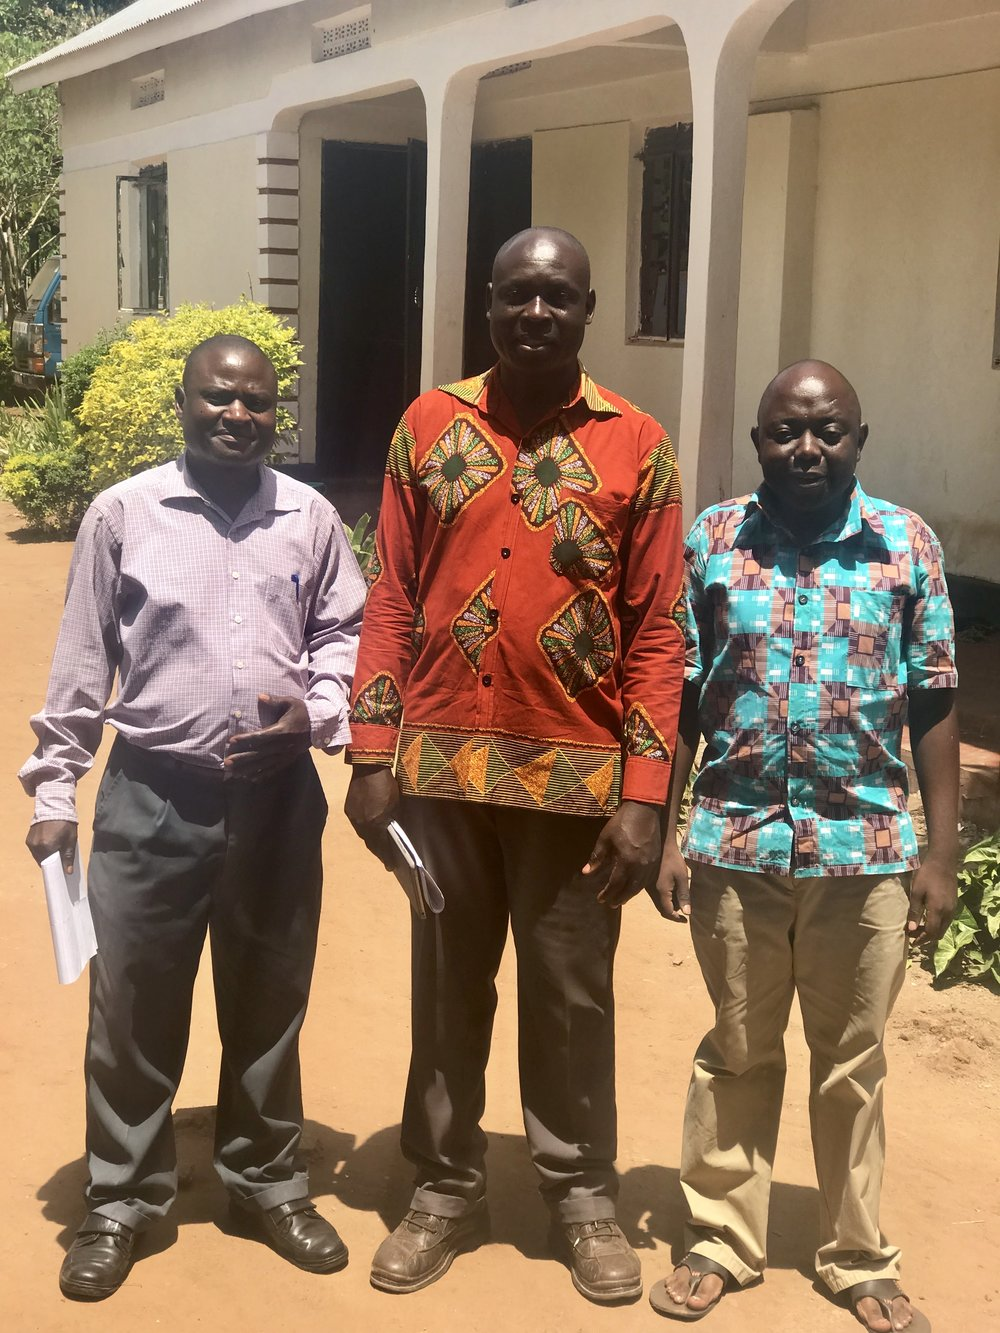 Negowa boys. They are directors, teachers and cooks.